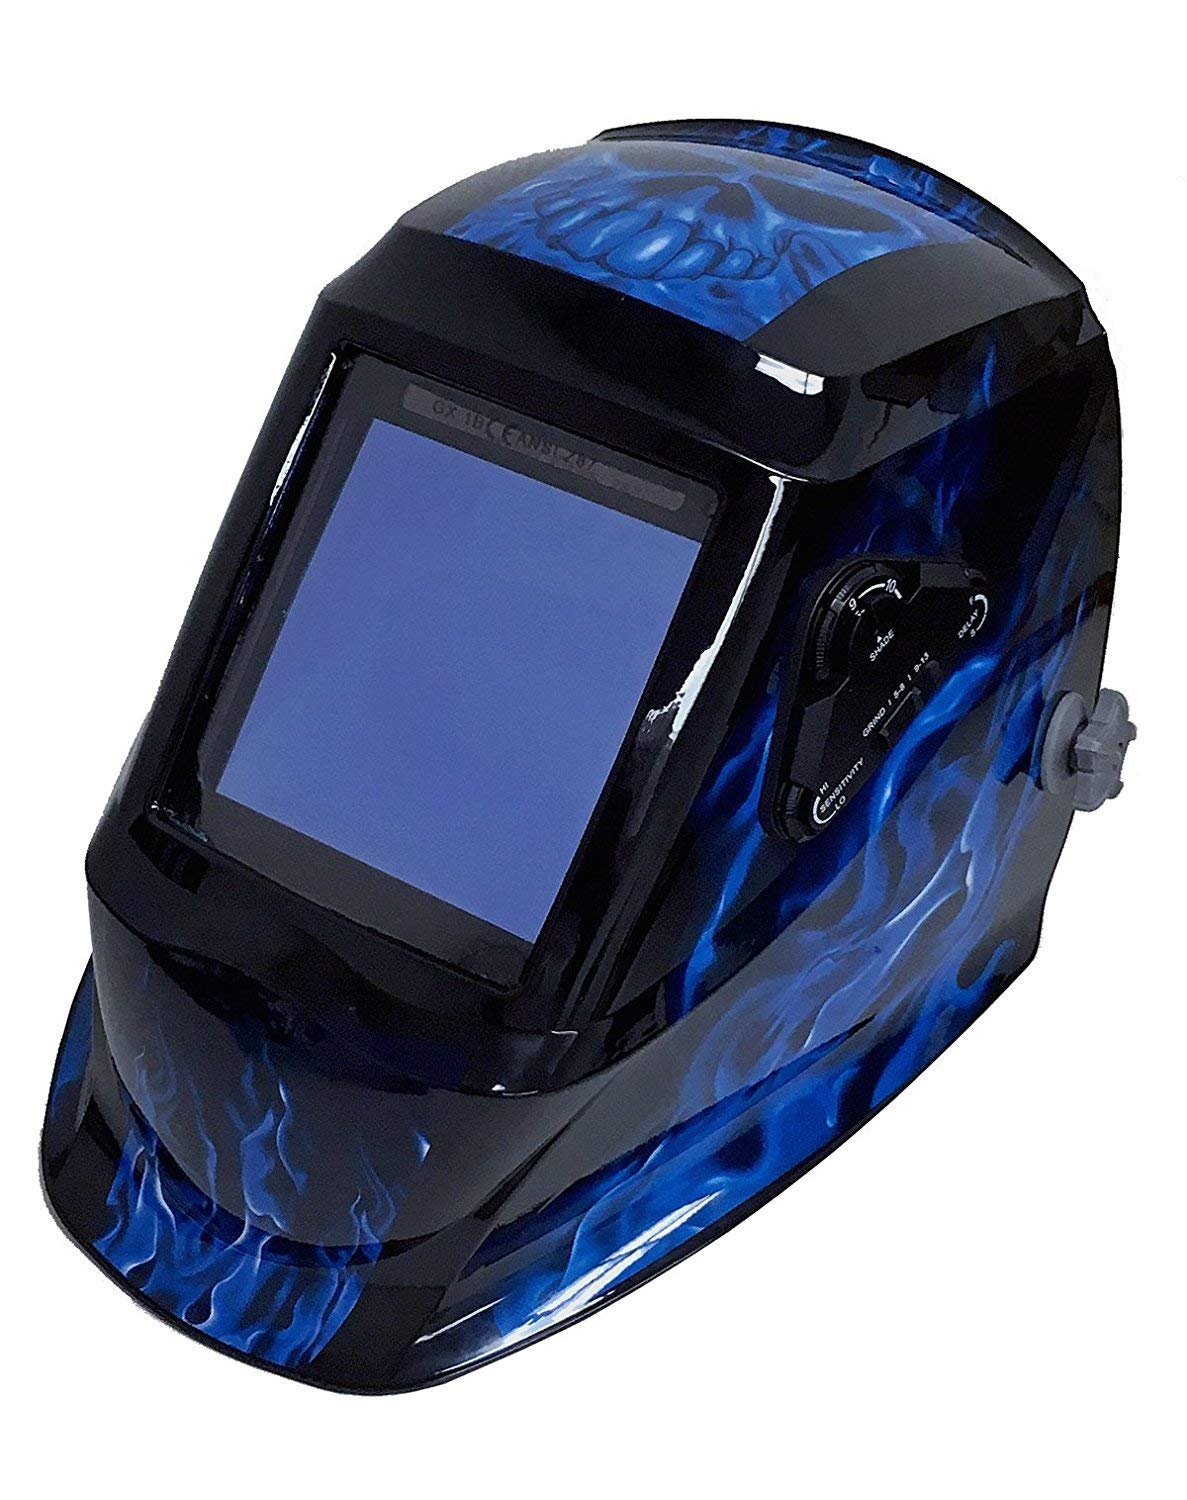 Instapark ADF Series GX990T Solar Powered Auto Darkening Welding Helmet with 4 Optical Sensors, 3.94'' X 3.86'' Viewing Area and Adjustable Shade Range #5 - #13 Bluish Devil by Instapark